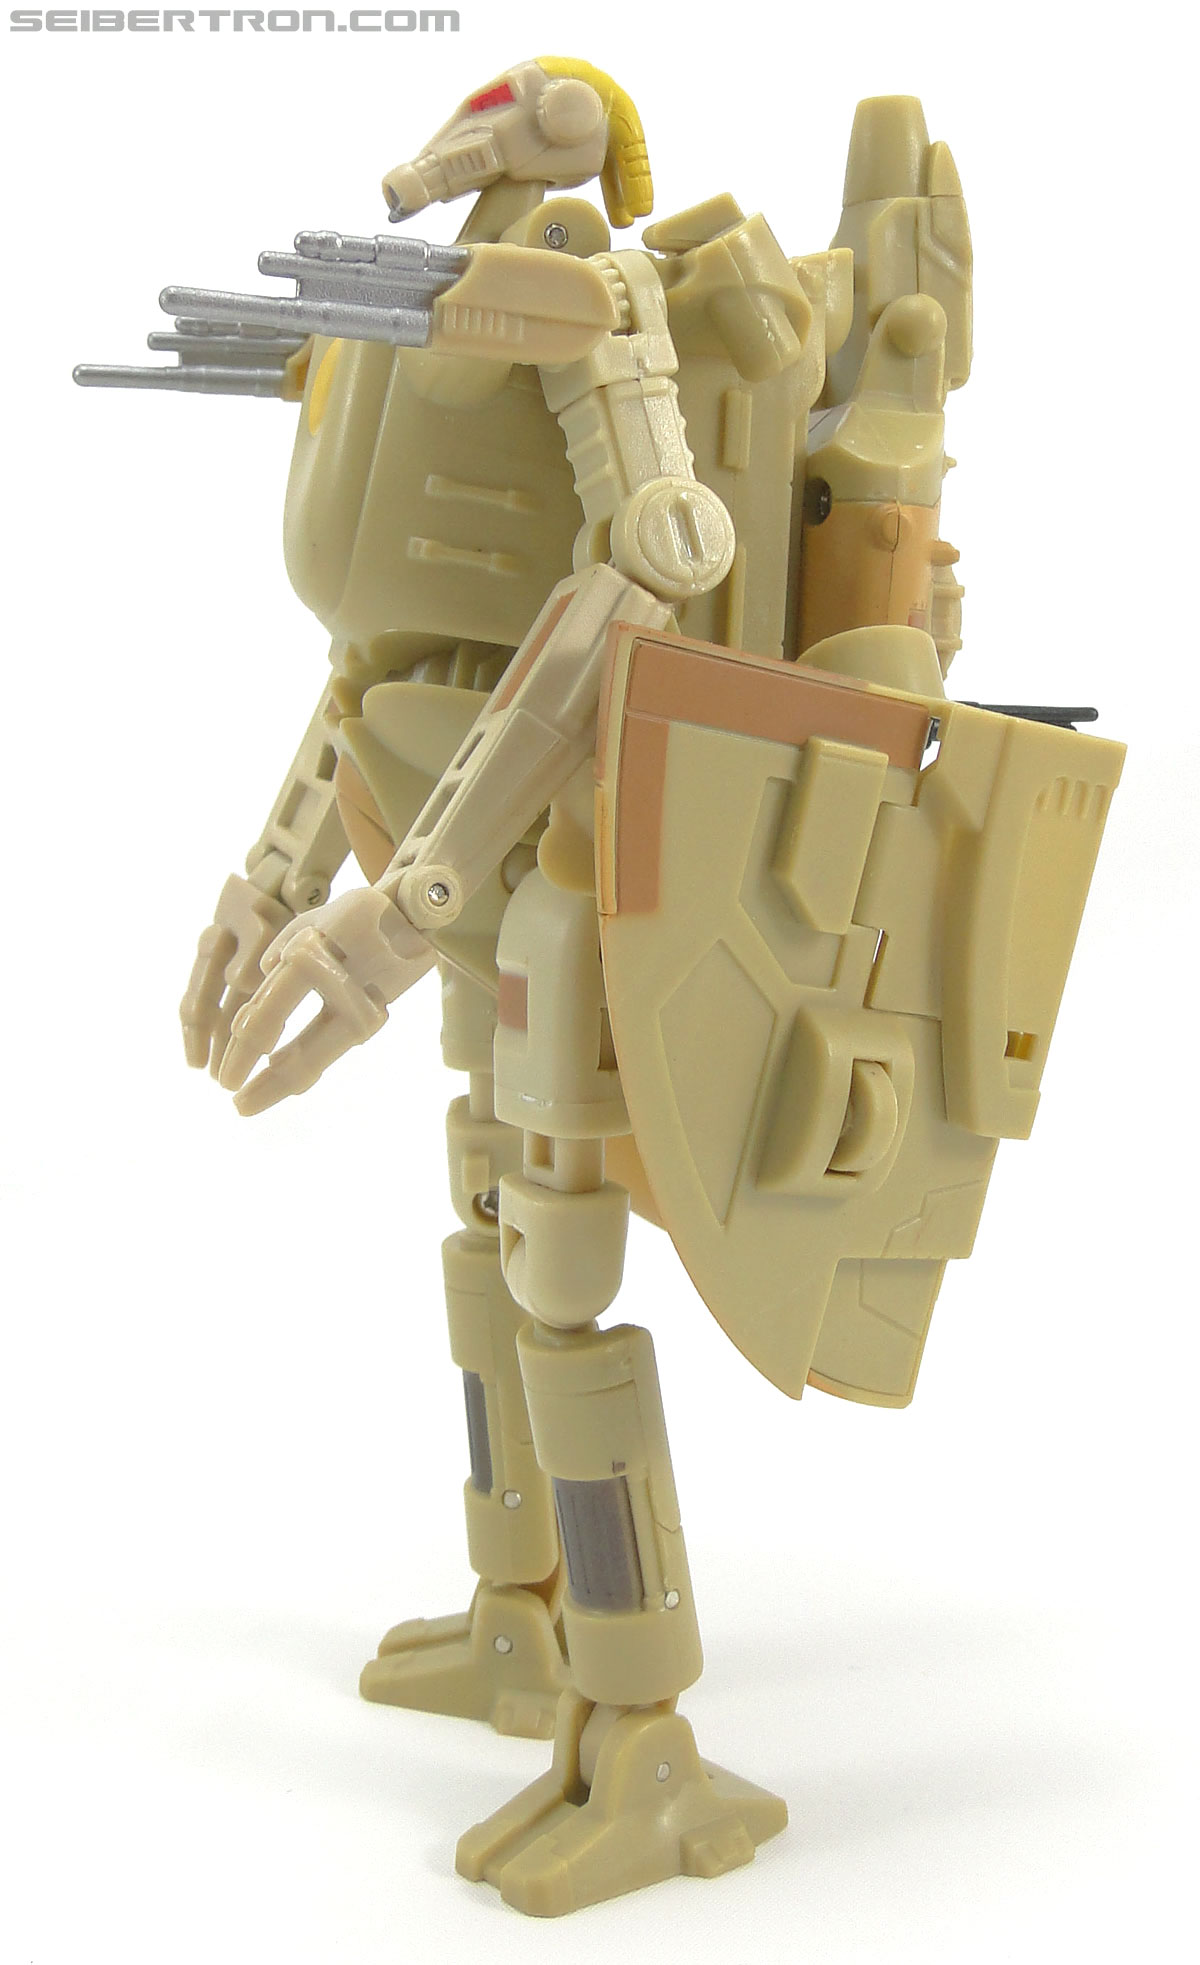 Star Wars Transformers Battle Droid Commader (Armored Assault Tank) (Battle Droid Commader) (Image #46 of 85)